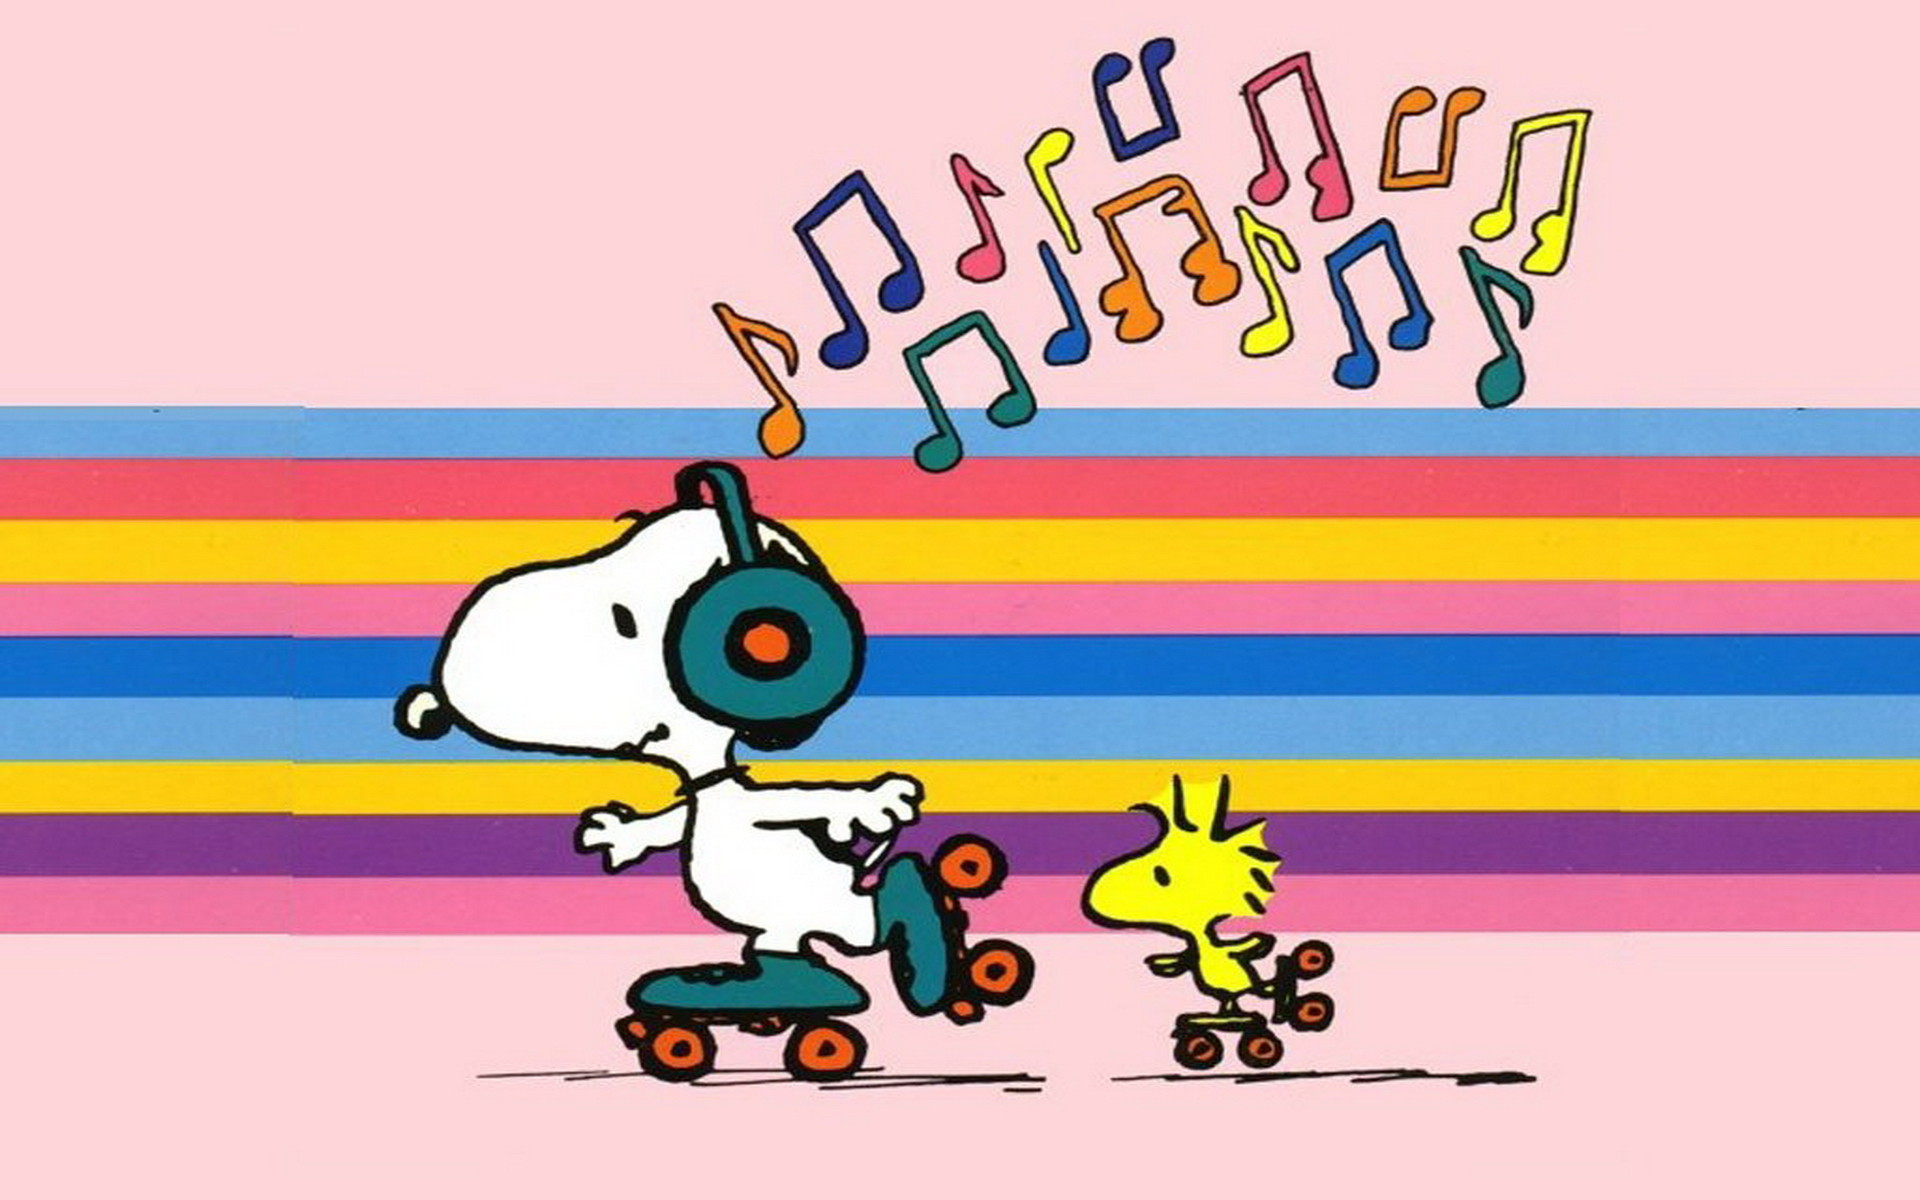 10 best ideas about Snoopy/Peanuts Backgrounds on Pinterest   The peanuts,  Search and Snoopy sleeping